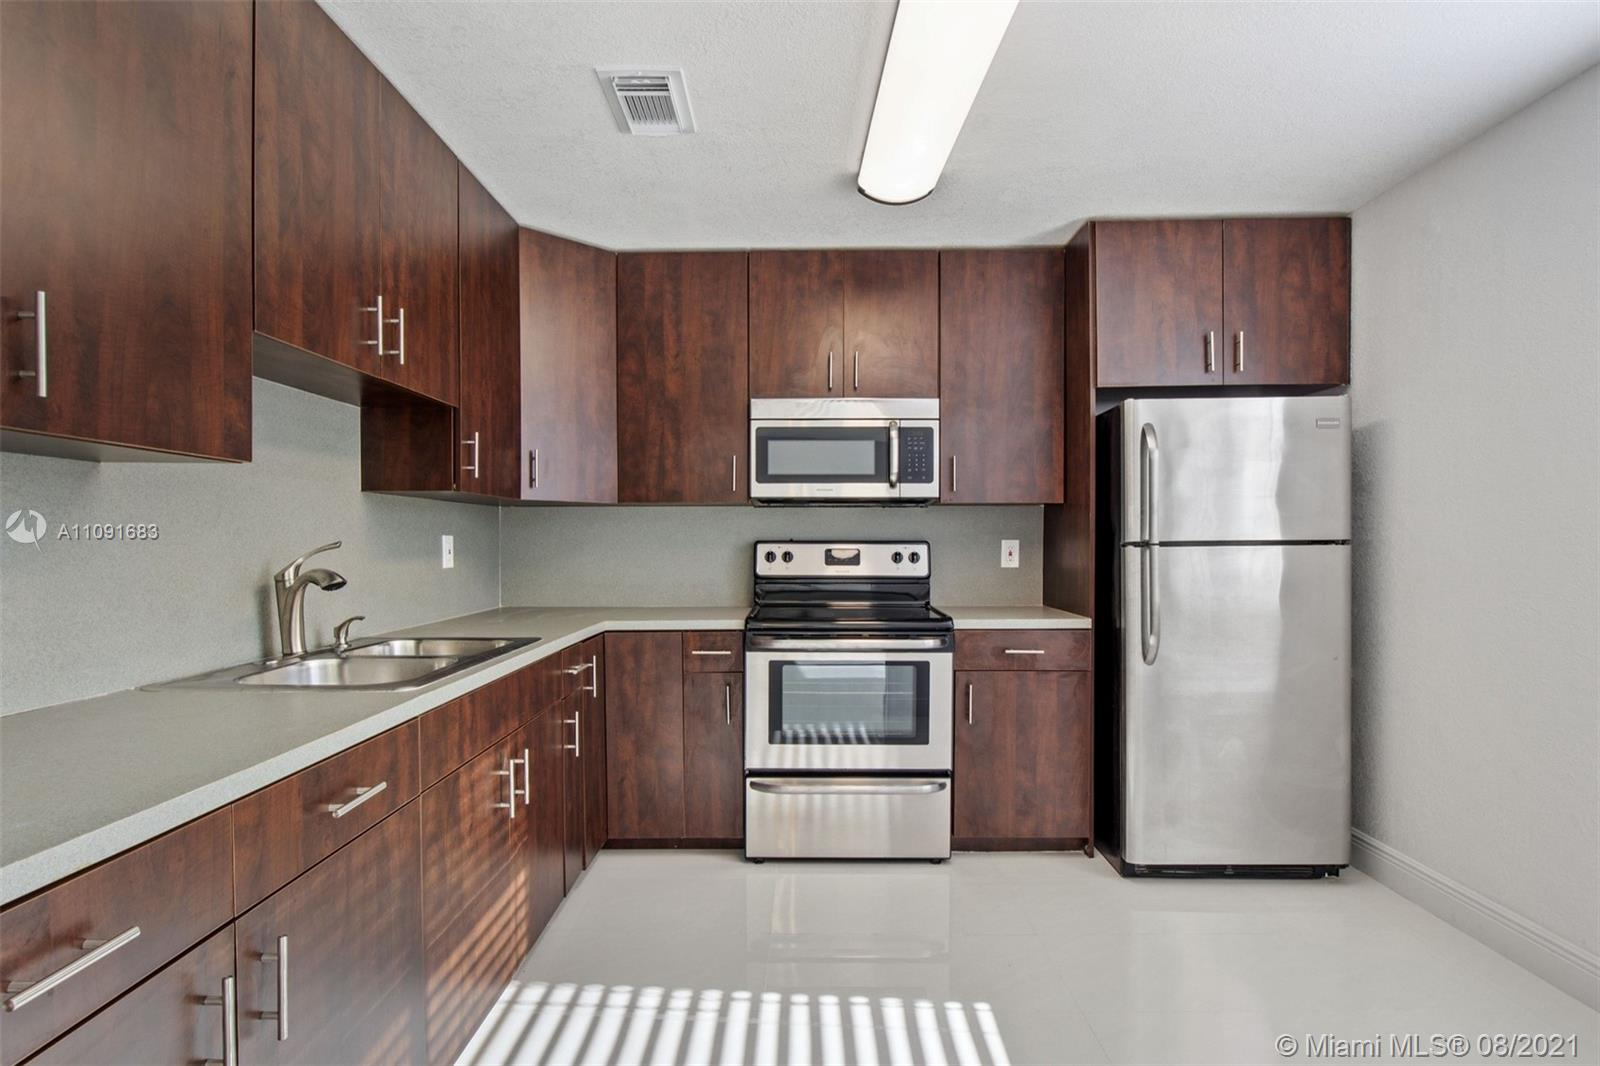 Beautifully remodeled unit. 3 bedroom 2 and a half bathroom. This unit is completely updated with tile throughout the first floor and wood-like floors upstairs. Very spacious and clean. The first floor has a large laundry room with plenty of space for storage, updated half bath, living room, dining area, and updated kitchen with stainless steel appliances. Walk out to a nice, low maintenance patio, perfect for entertaining. The 3 bedrooms and 2 baths are located on the second floor. One assigned parking spot located directly in front of the unit and plenty of guest spots close by. The unit is located close to the bbq/picnic area, playground, tennis courts, and pool. This unit will not last.